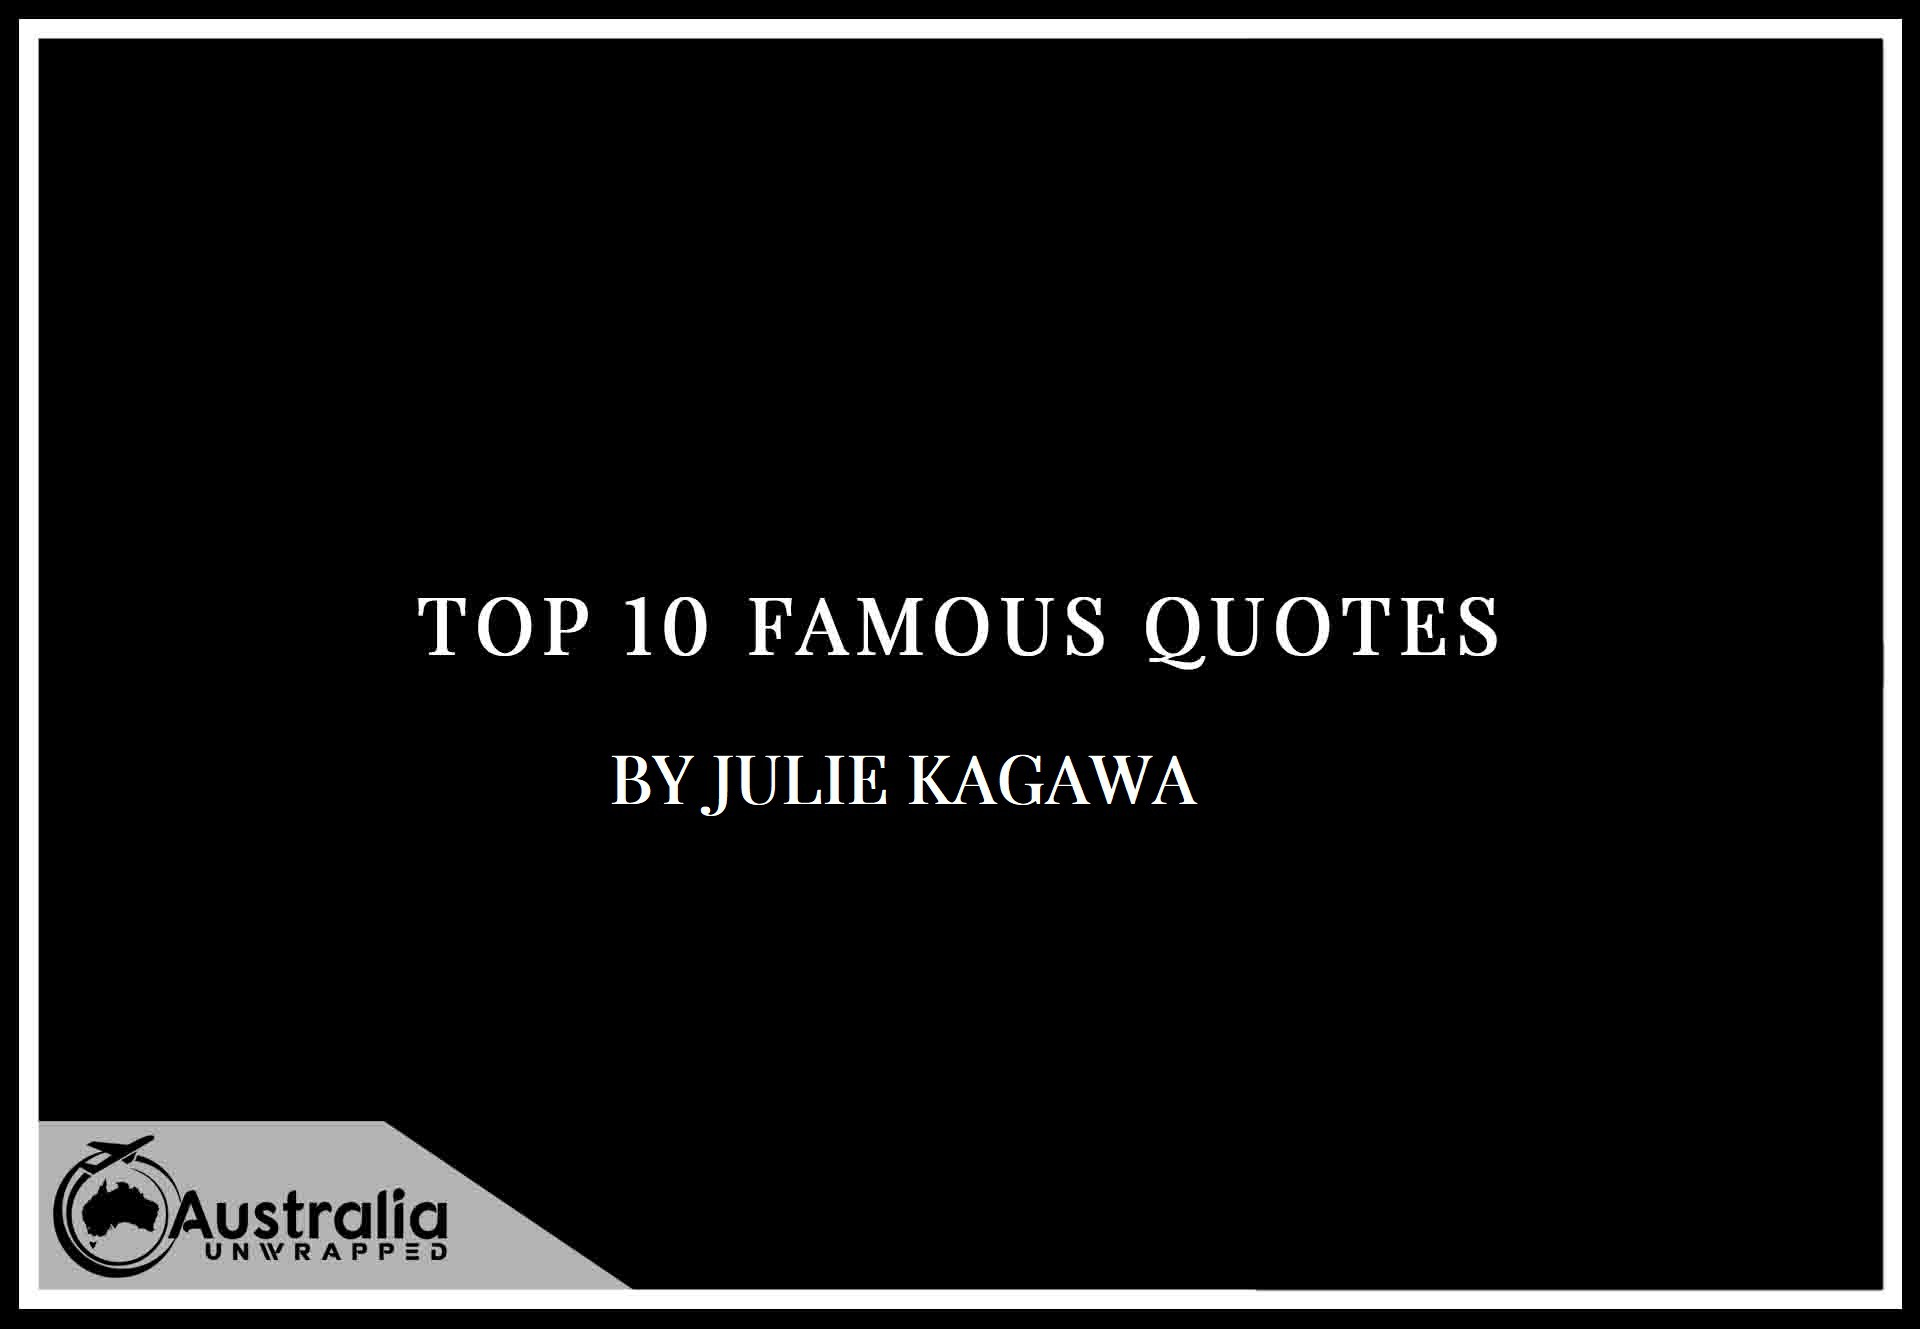 Top 10 Famous Quotes by Author Julie Kagawa